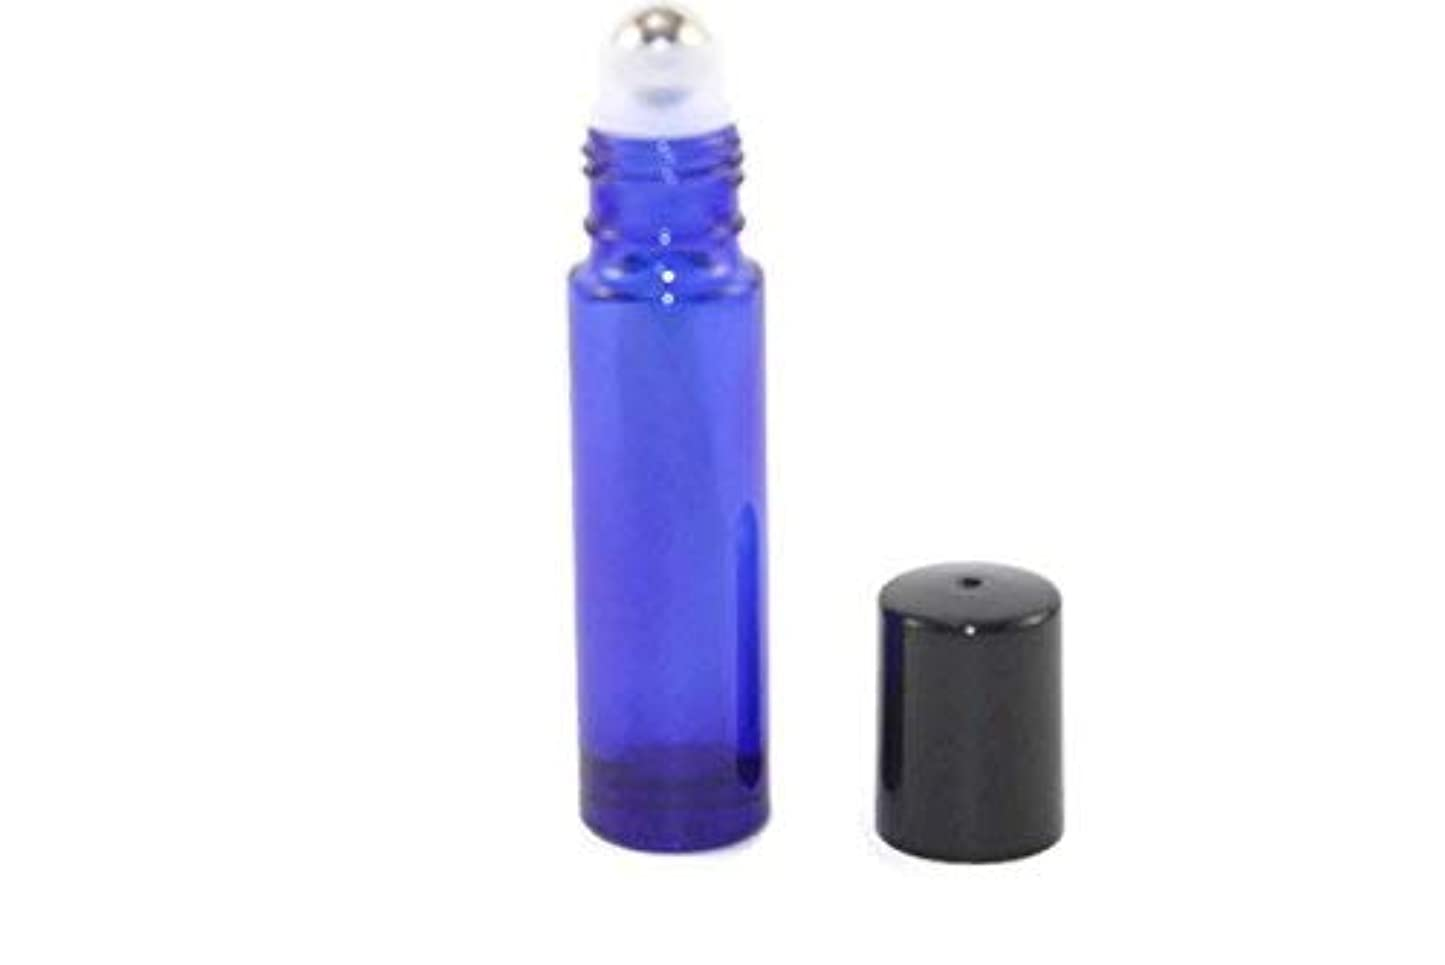 USA 144-10ml COBALT BLUE Glass Roll On THICK Bottles (144) with Stainless Steel Roller Balls - Refillable Aromatherapy...